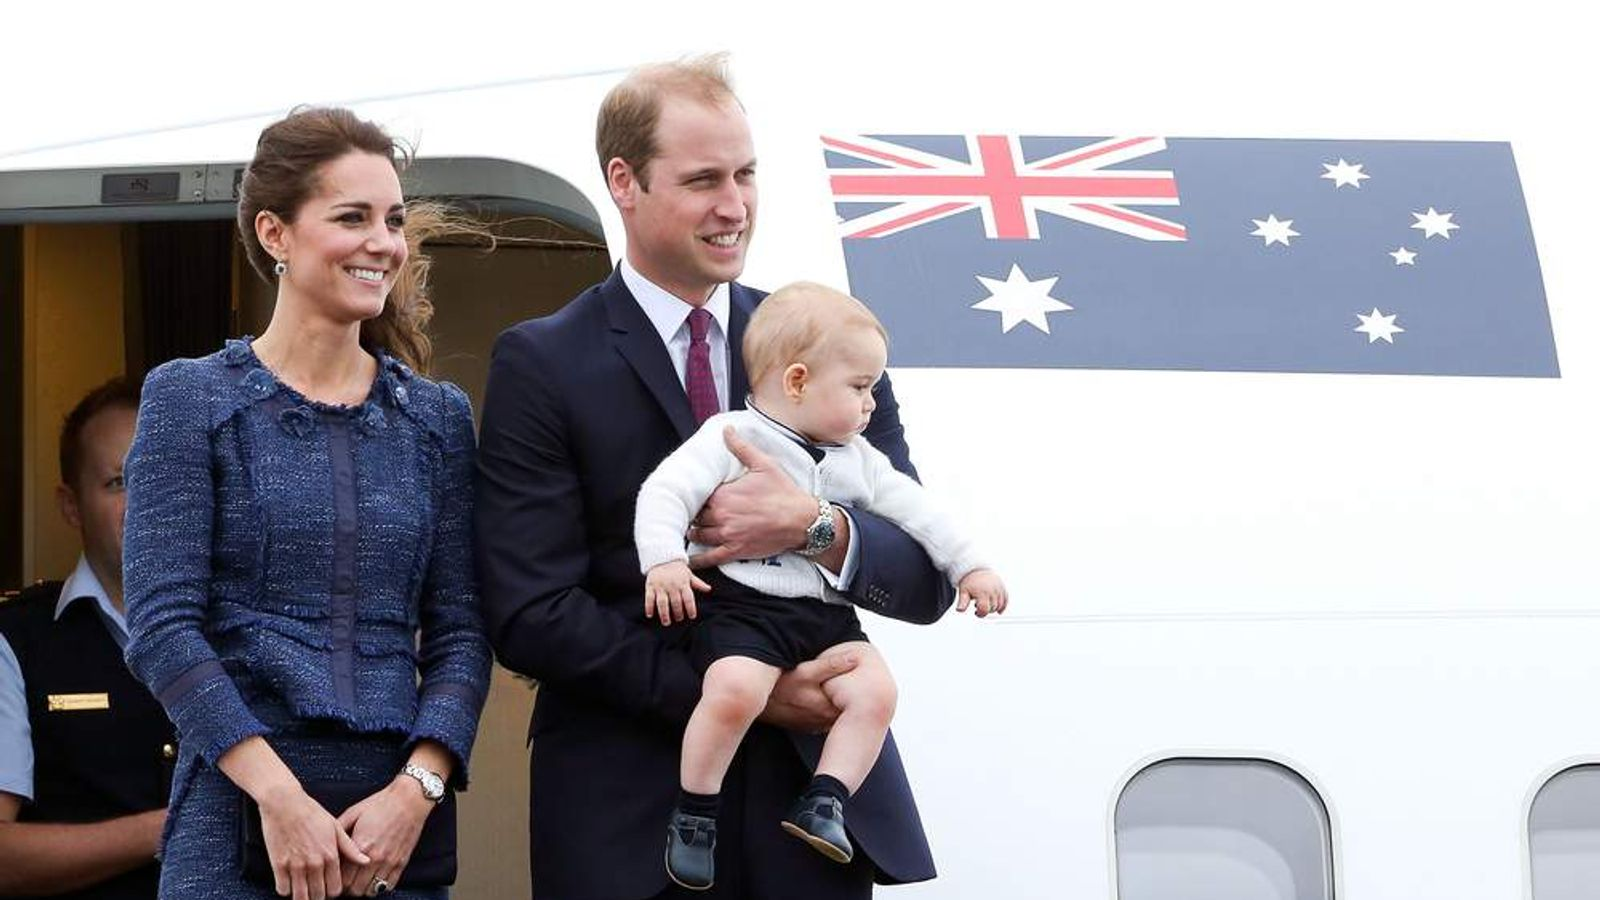 The Duke and Duchess of Cambridge tour Australia and New Zealand.